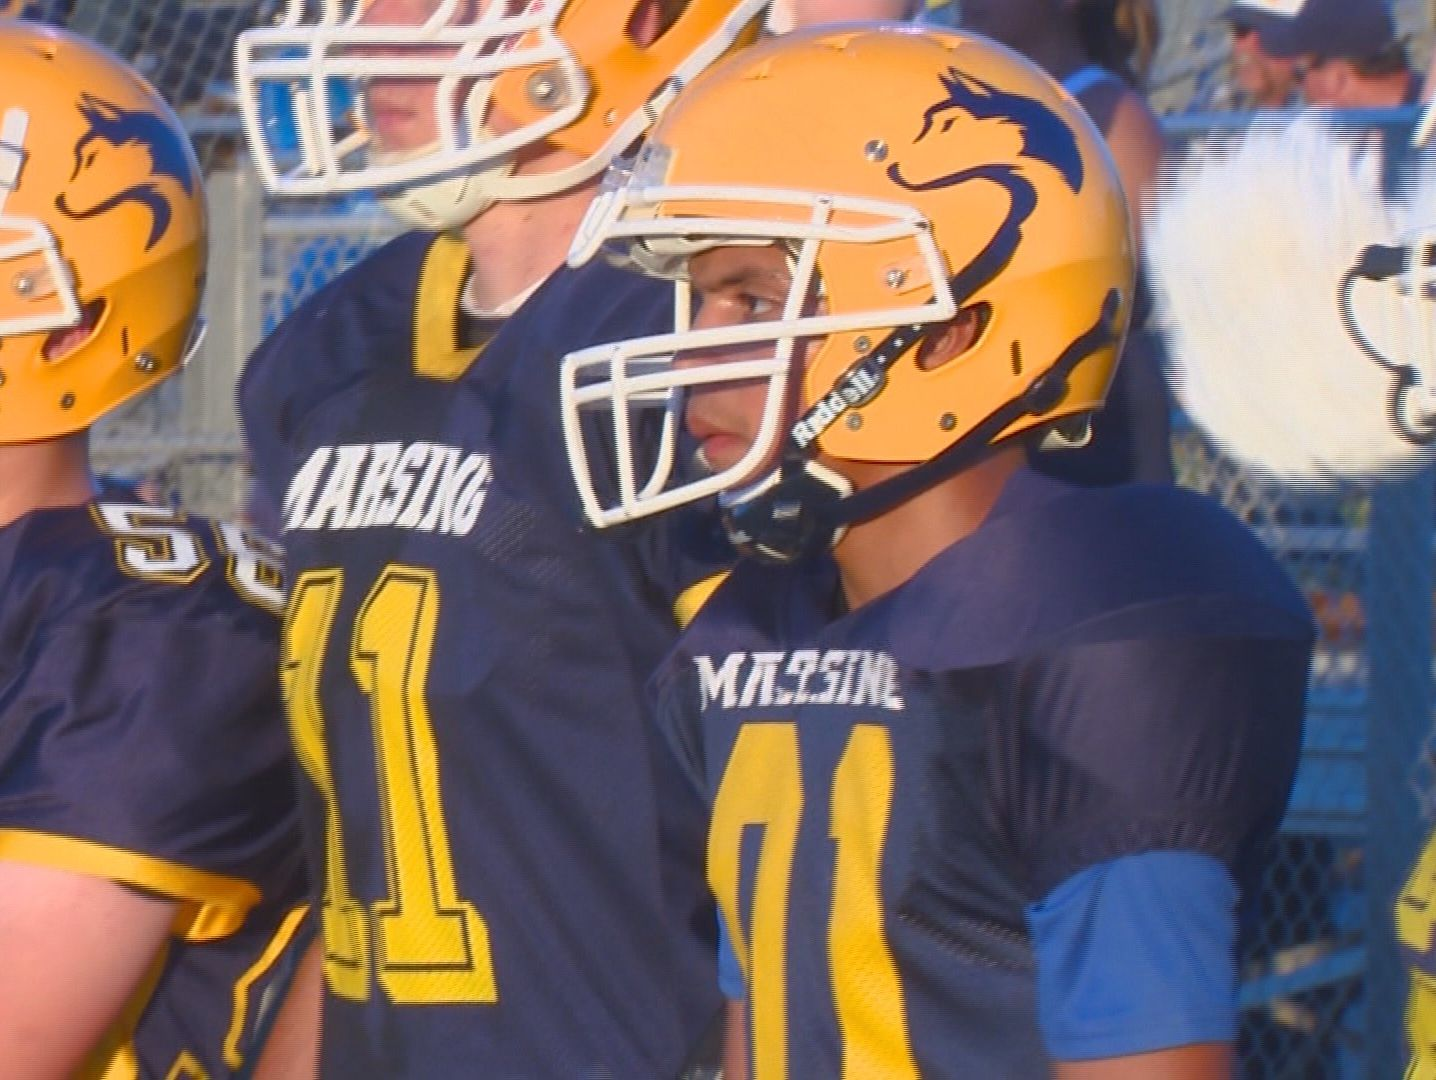 The Marsing High School football team honored inspirational leader Oseas Arriaga at the team's homecoming against Melba Friday night. Oseas was made honorary team captain and got to score a touchdown.